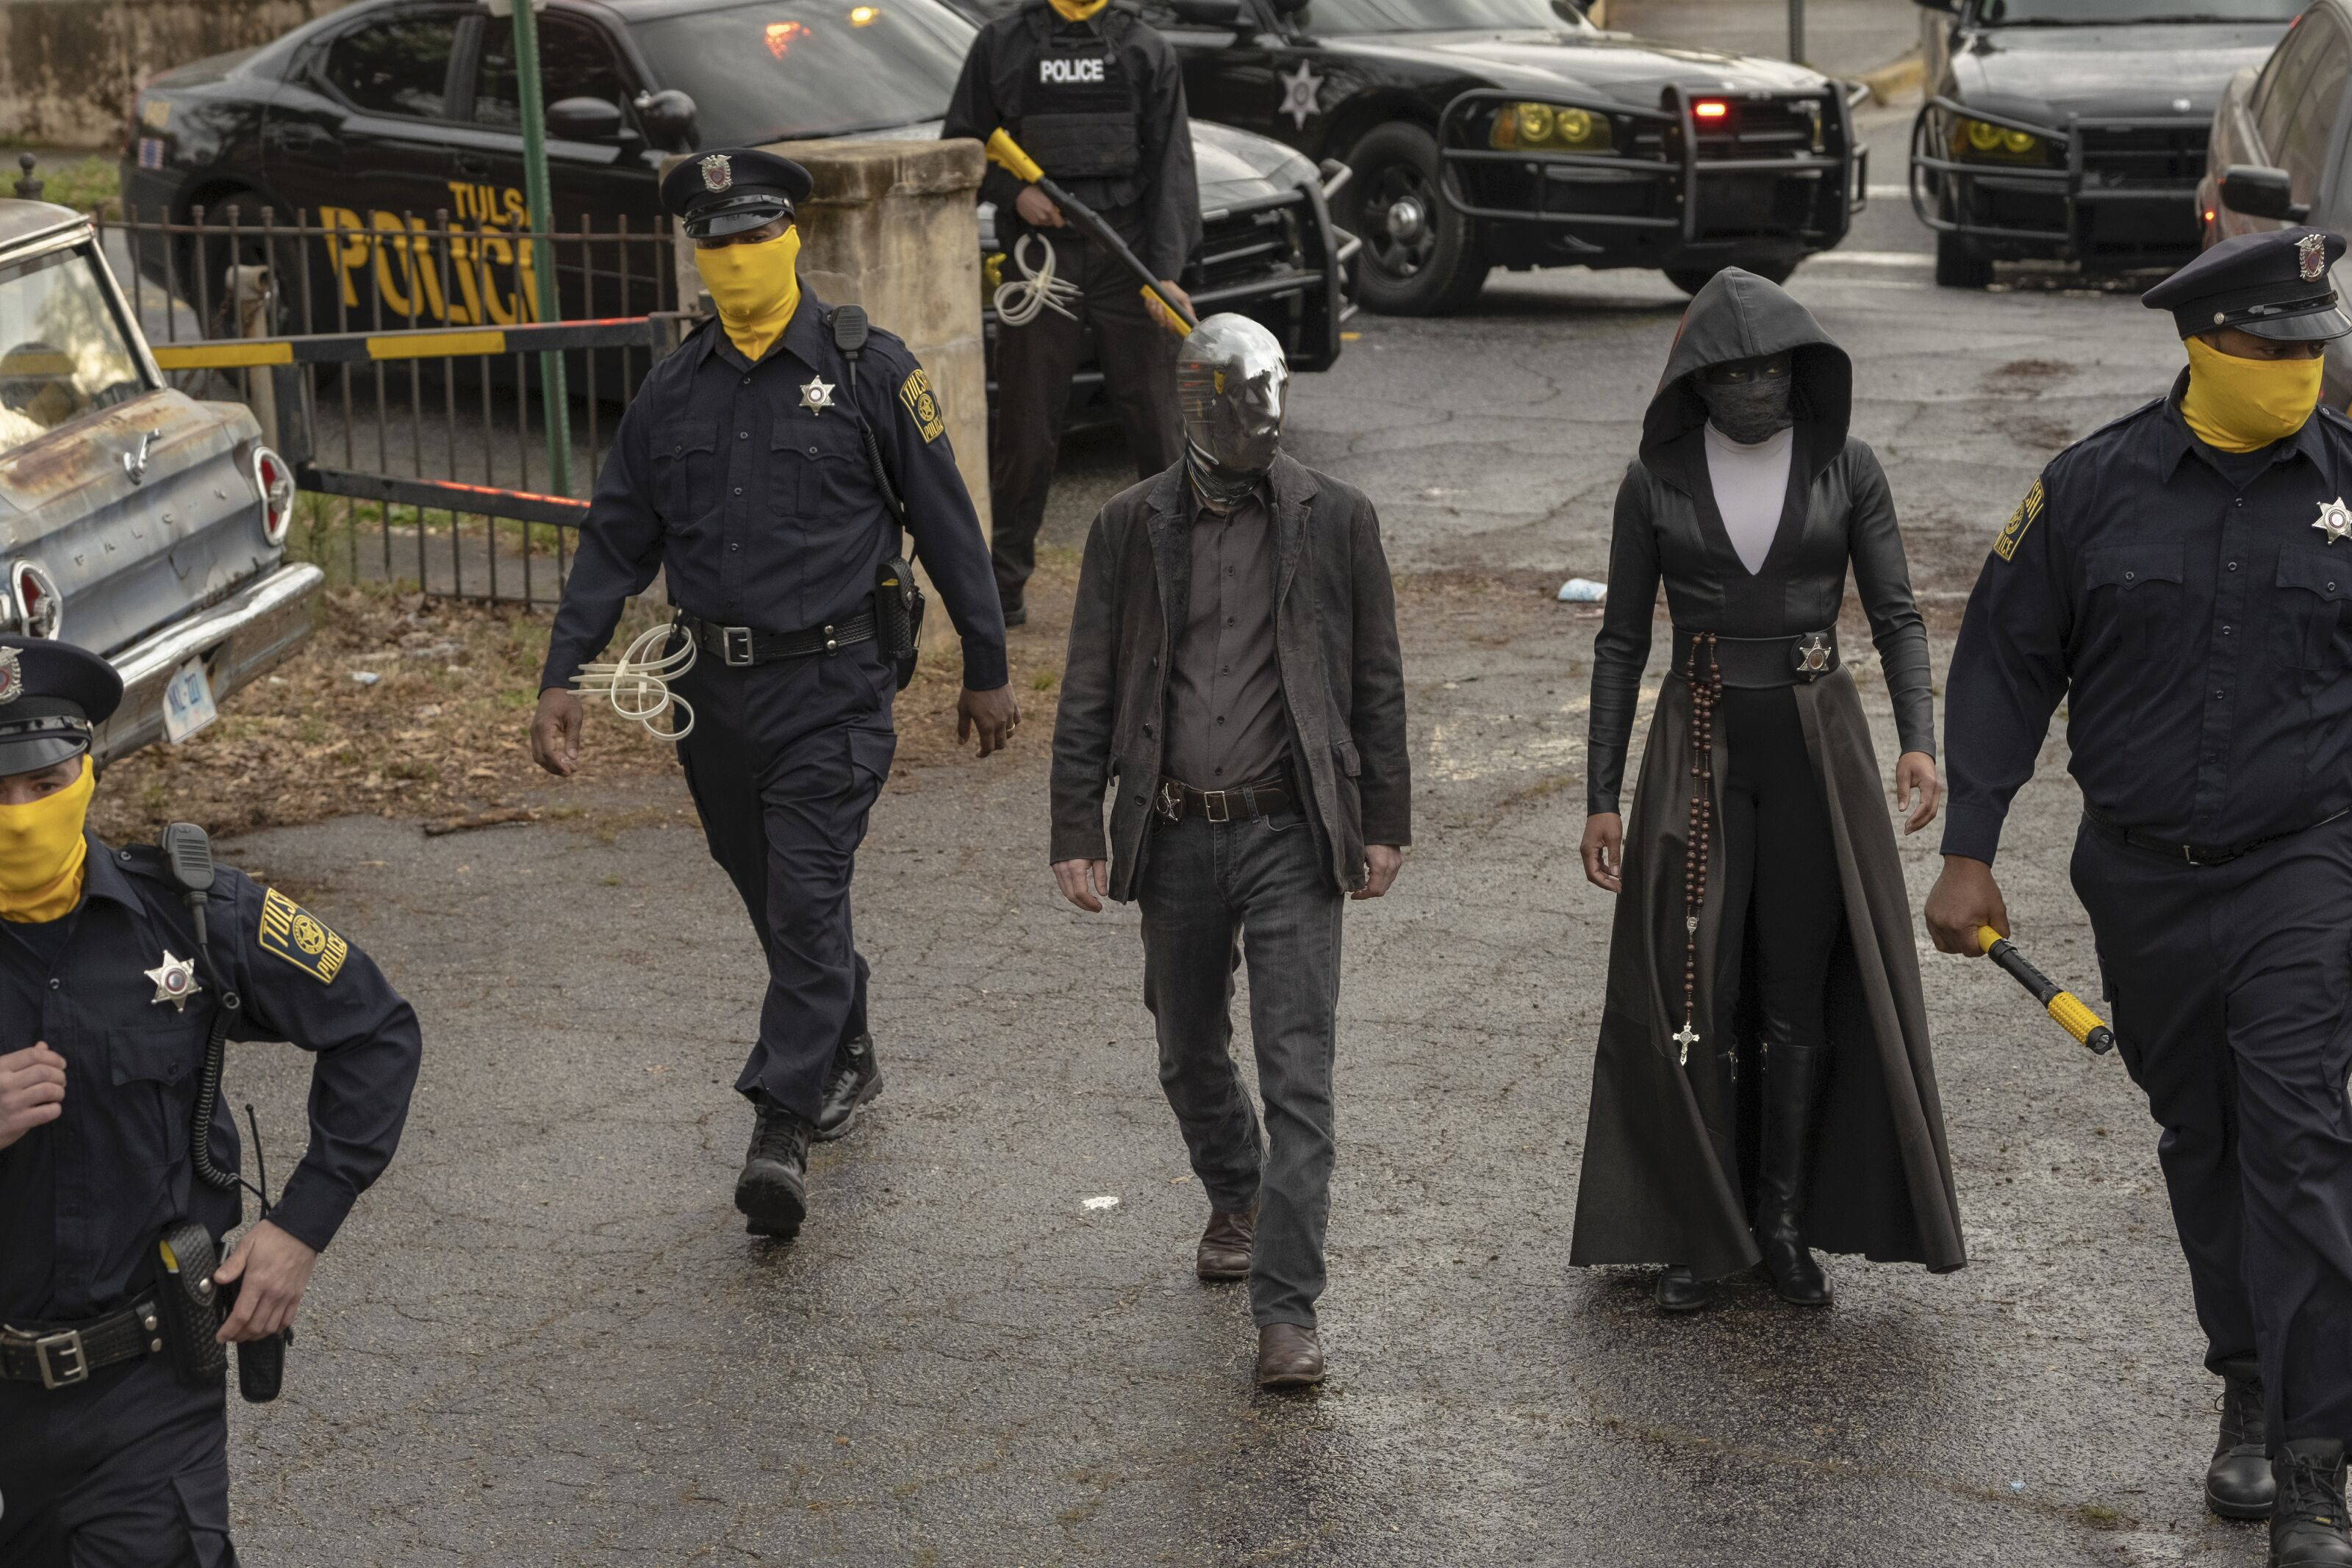 Watchmen: It looks like we'll to get to know more about Looking Glass in this week's episode